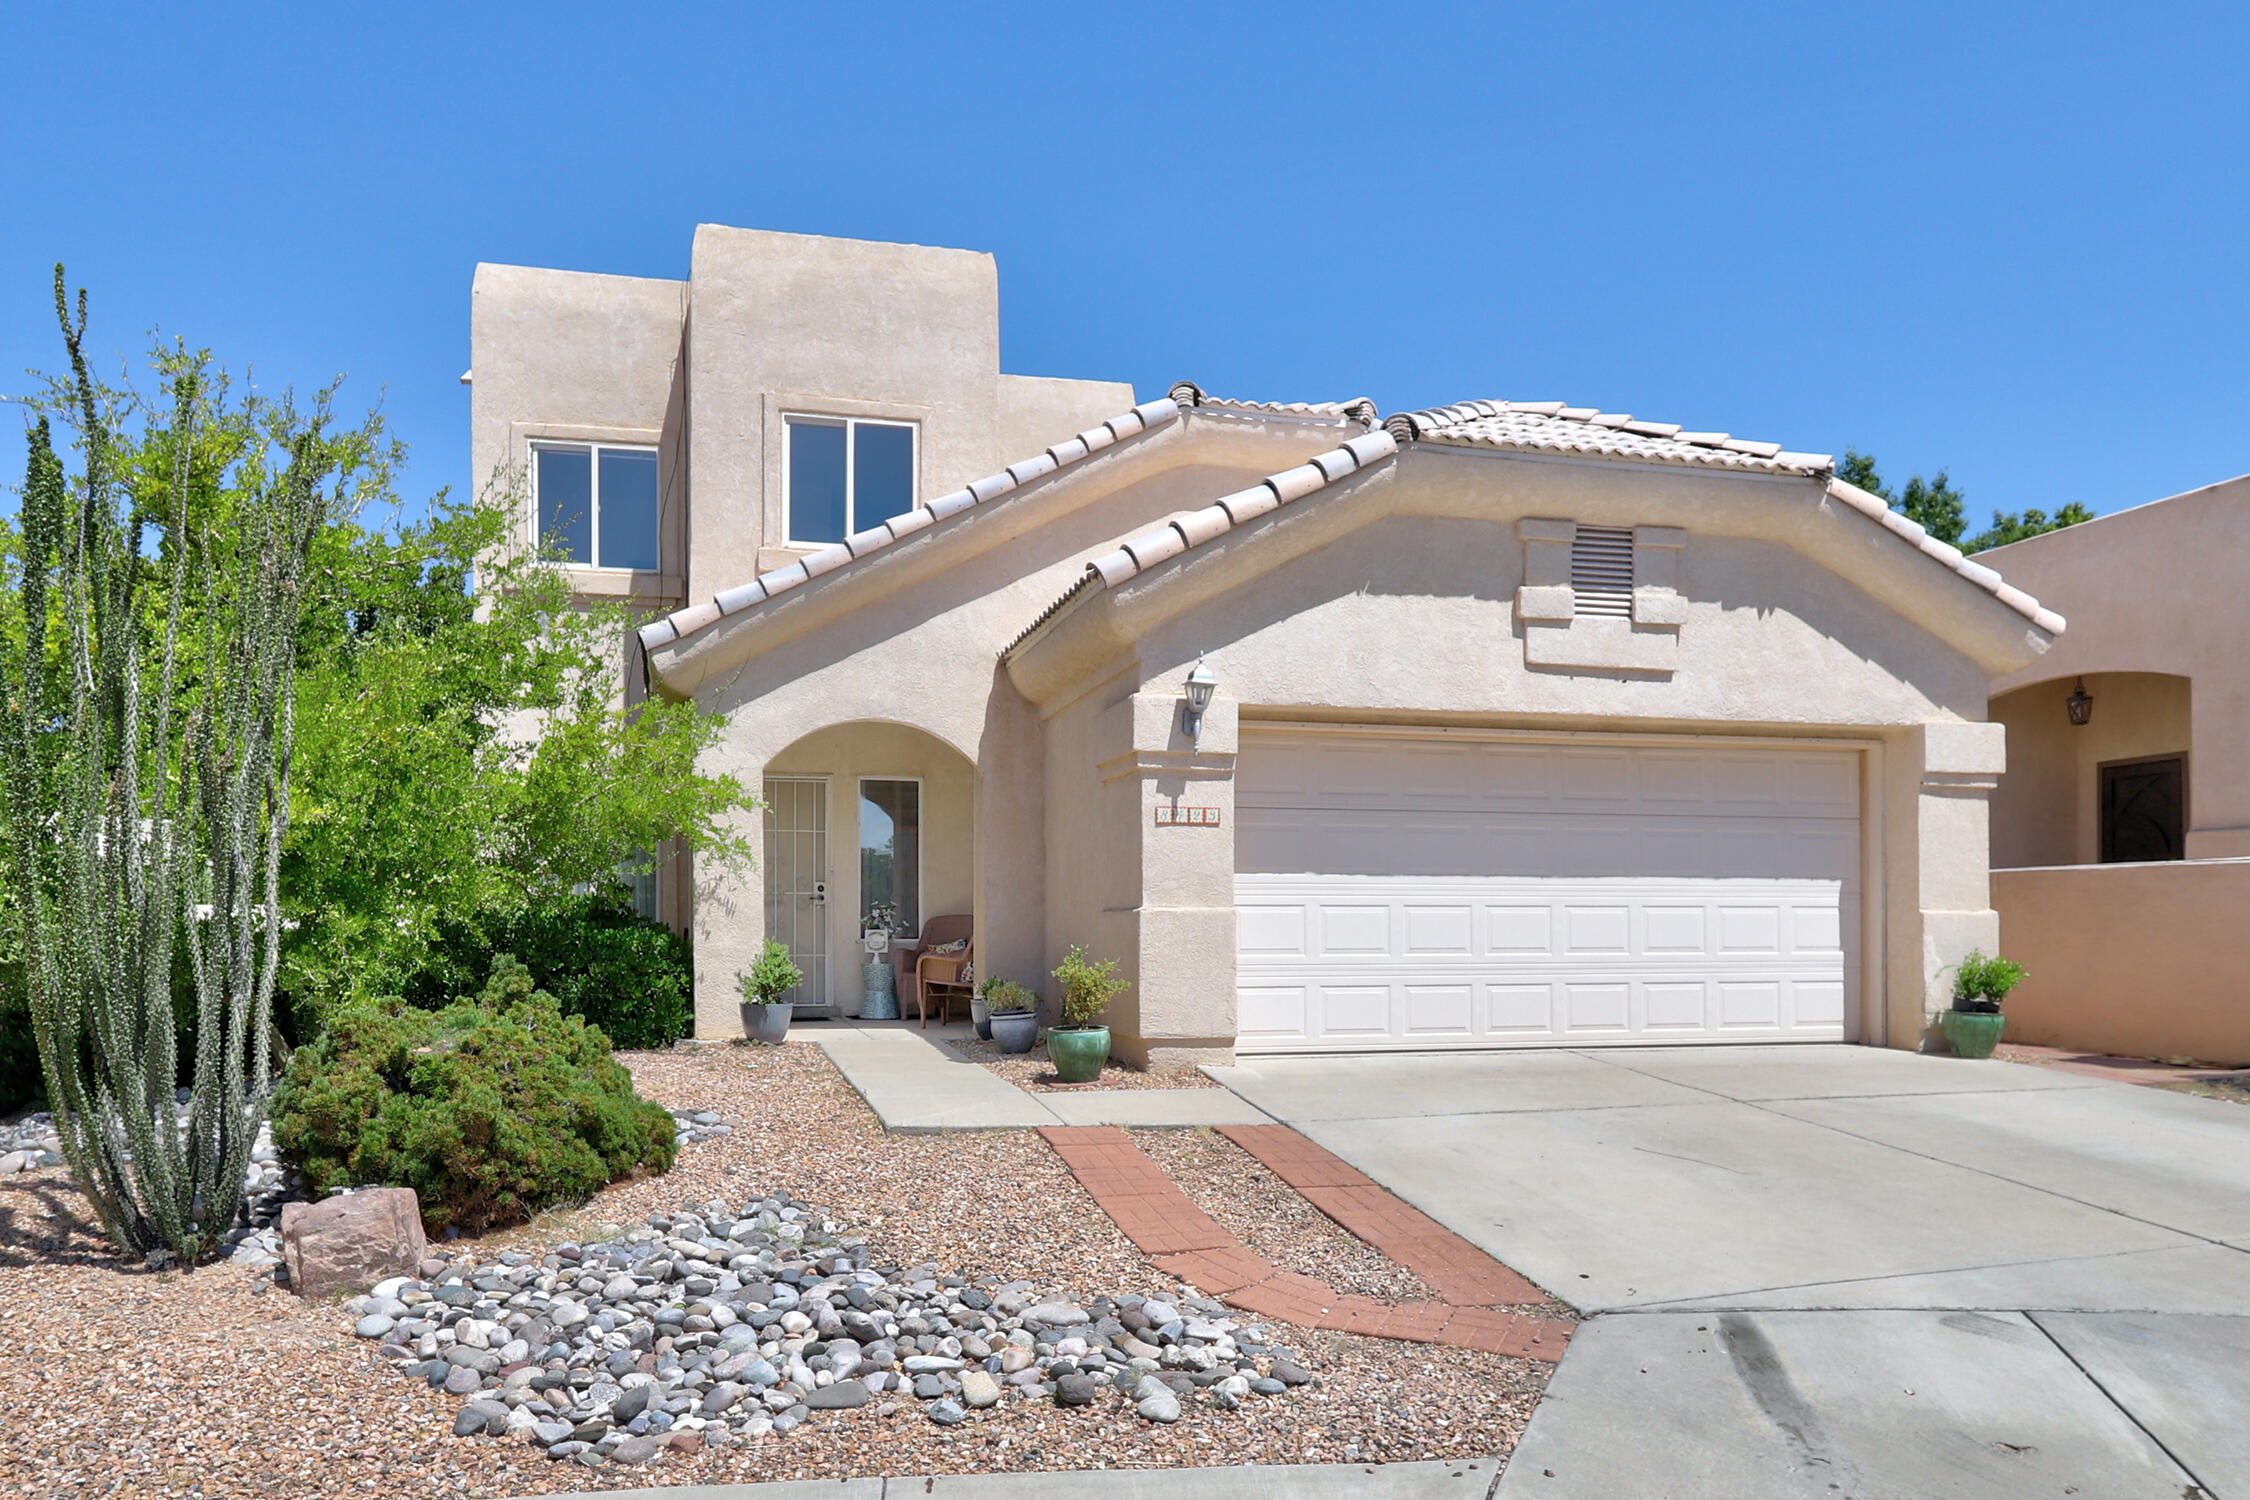 LIST PRICE CORRECTION to $354,500!!! La Cueva HS Dist! Shopping & Restaurants near! Possible 4 br! MASTER BEDROOM MAIN FLOOR w/full bath, sep. shower & tub w/ double sink & walk in closet!! Loft w/closet, 2 bedrooms & full bathroom upstairs. Lots of storage! Newer Furnace, Newer Refrigerated AC, Newer Hot Water Heater & Newer Dishwasher! **House & Carpets Professionally cleaned 8/24/21, Professionally painted throughout 9/7/21 AND $3000 flooring allowance with ACCEPTABLE offer! Roof maintenance done 9/22/21** Refrigerator, Washer & Dryer Stay! Abundance of shade from fruit bearing Apple, Apricot, Plum & Cherry trees. Matured Grape Vines along side bearing many grapes to enjoy! Home on a Cul-de-sac!  Ready for new owners to make it their own!